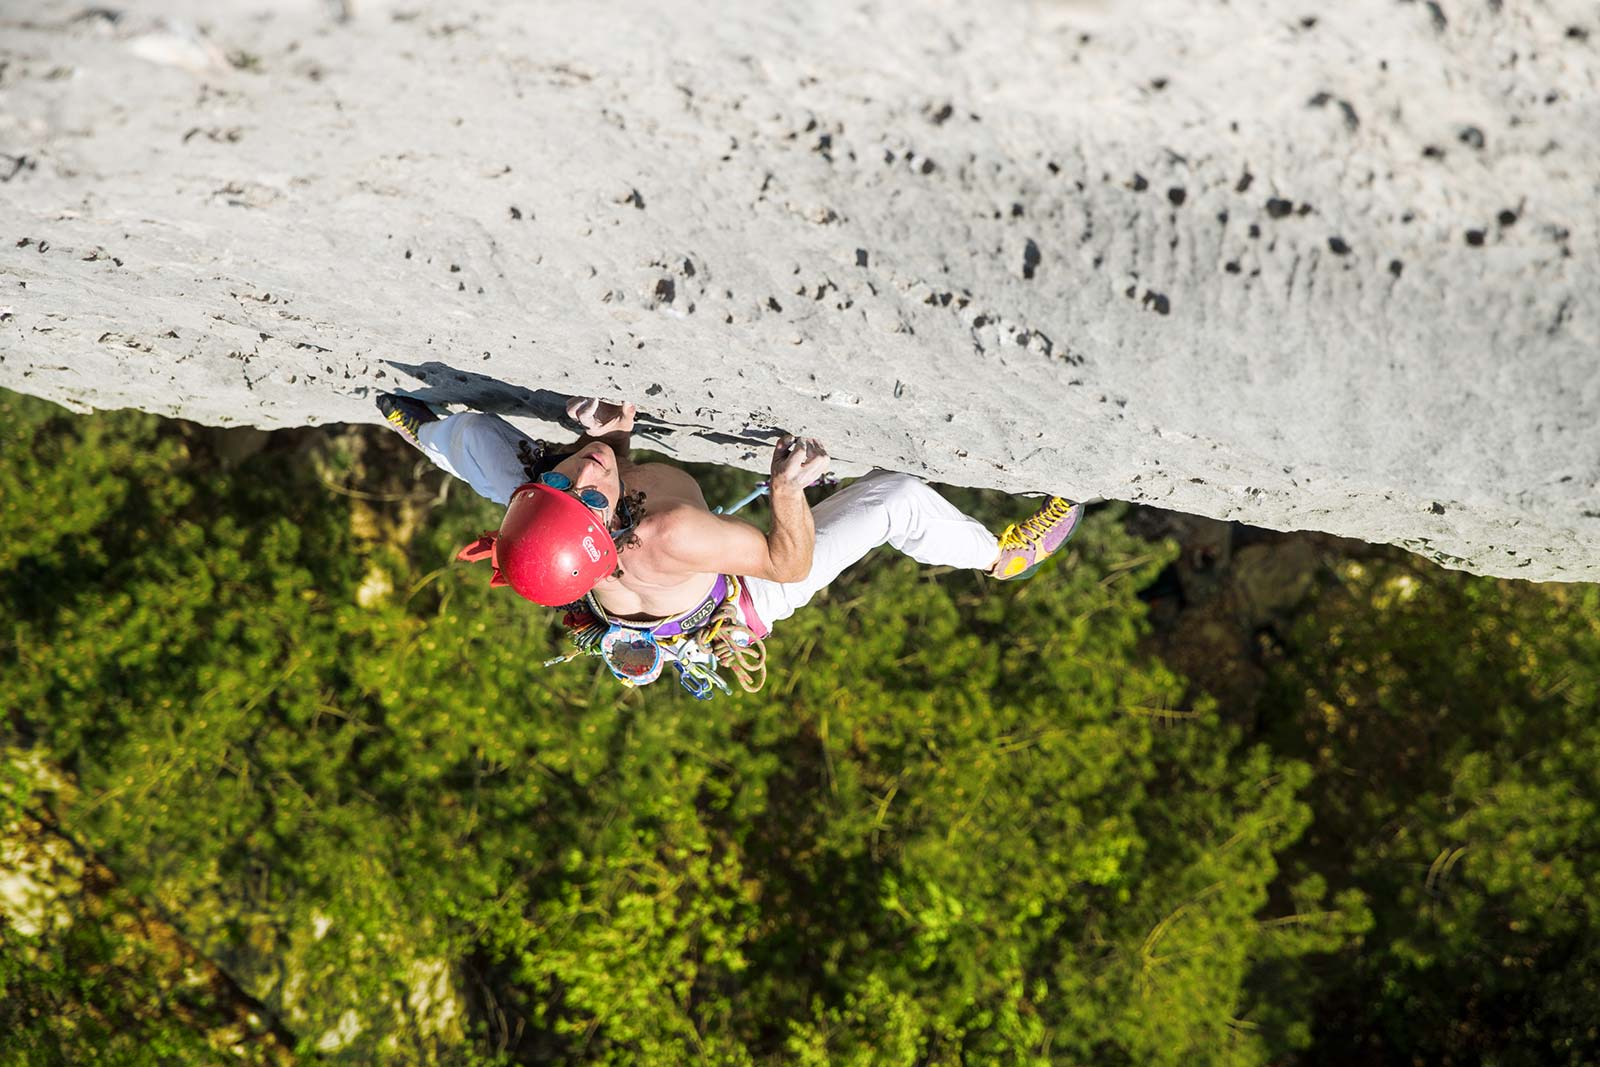 Matteo Mocellin, terzo classificar to all'Arco Rock Star 2018, contest fotografico di arrampicata sportiva